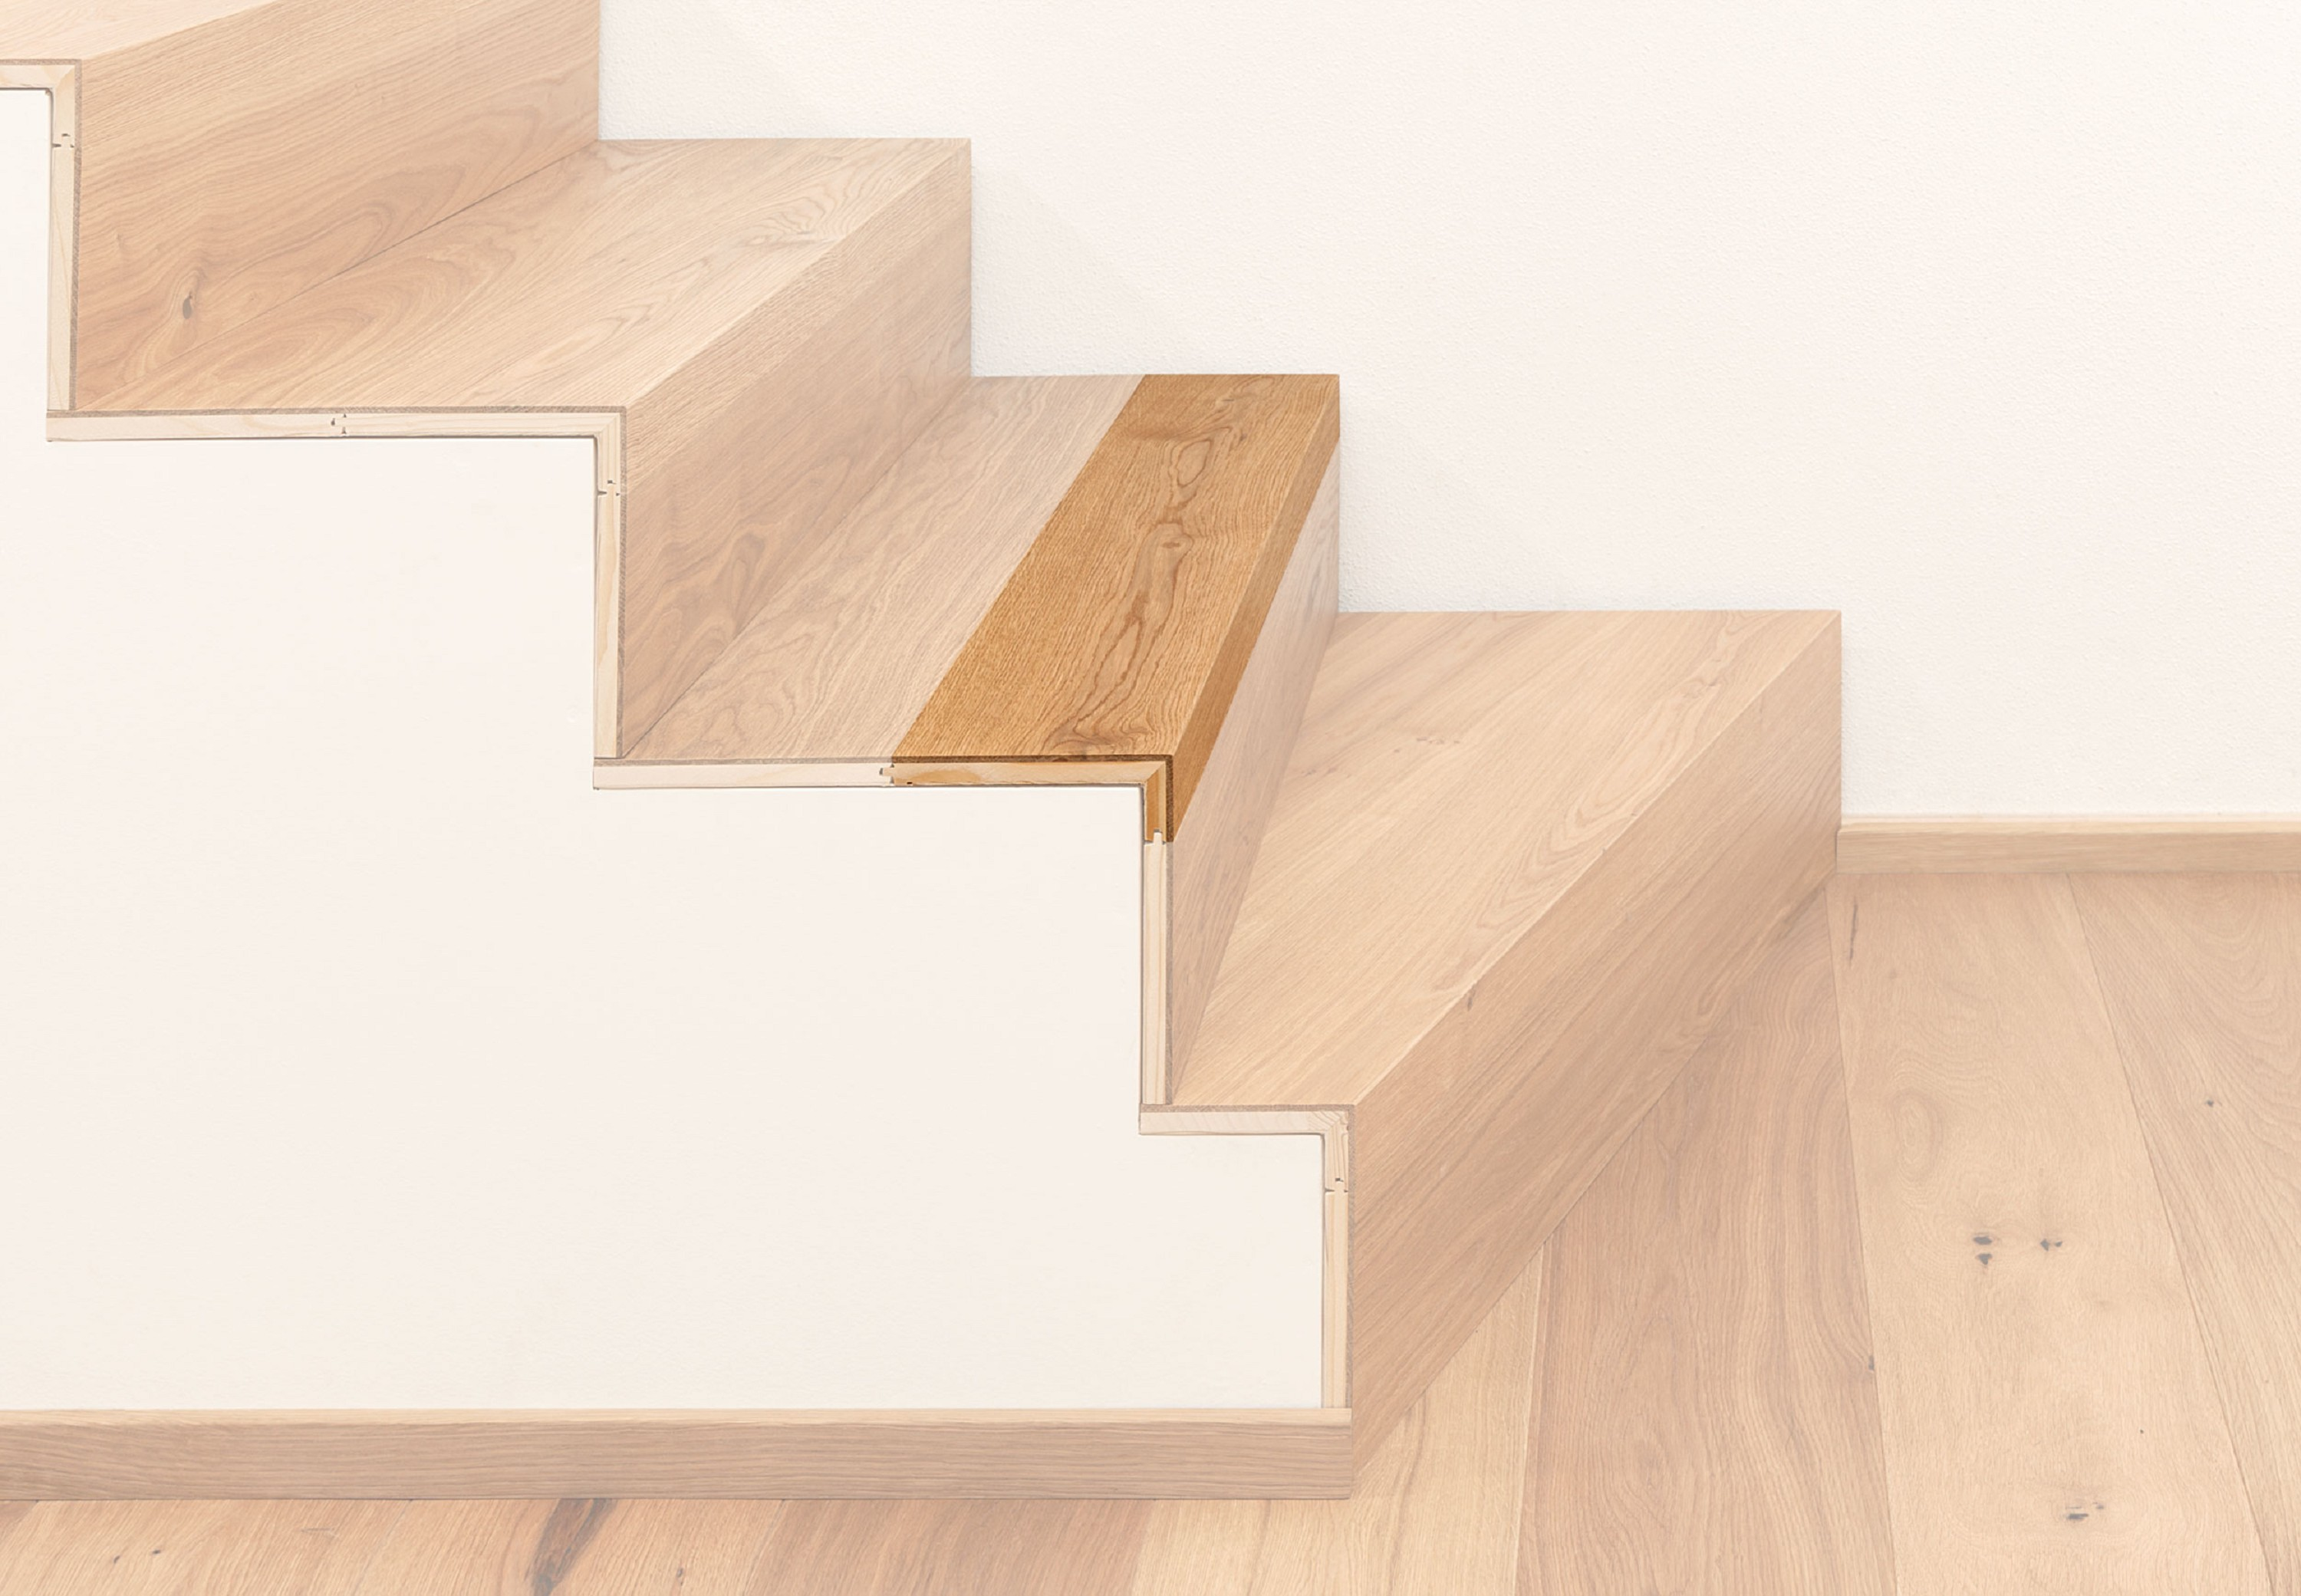 treppe parkett kante parkett u2013 richtig nett holzland beese unna stairbox scheucher. Black Bedroom Furniture Sets. Home Design Ideas